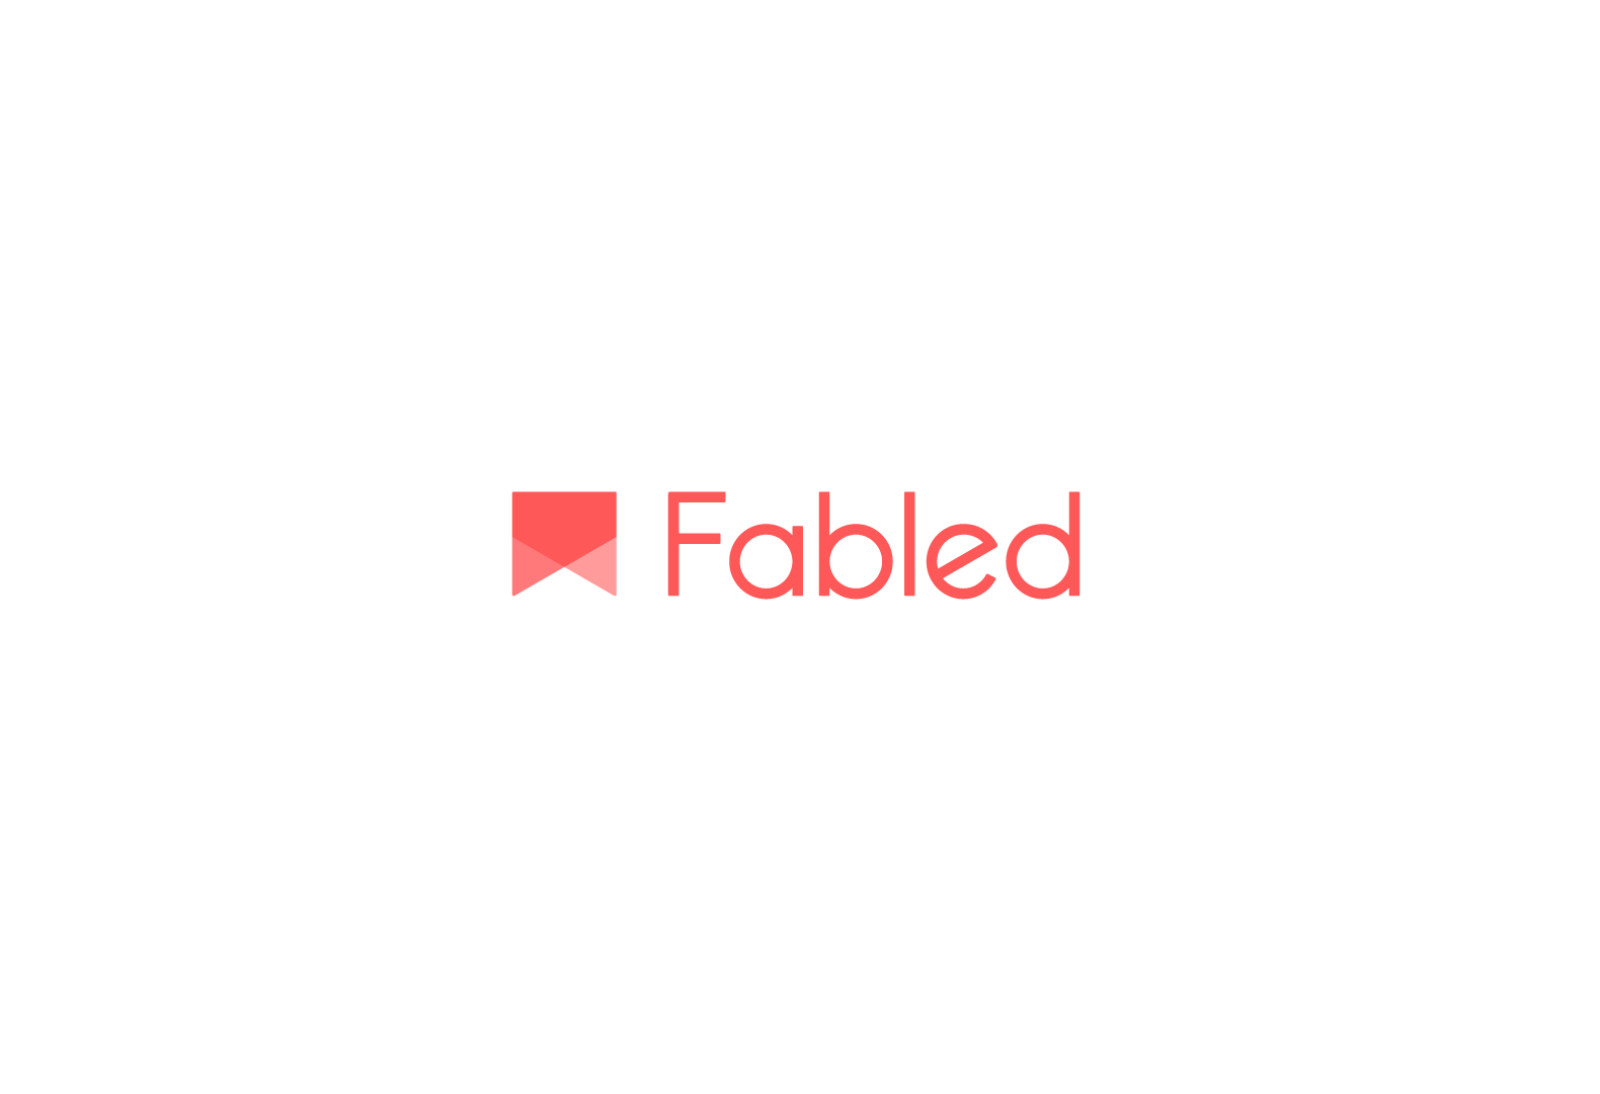 The Fabled logo uses a simple shape hinting at the forms found in a bookmark — shown here red on white.